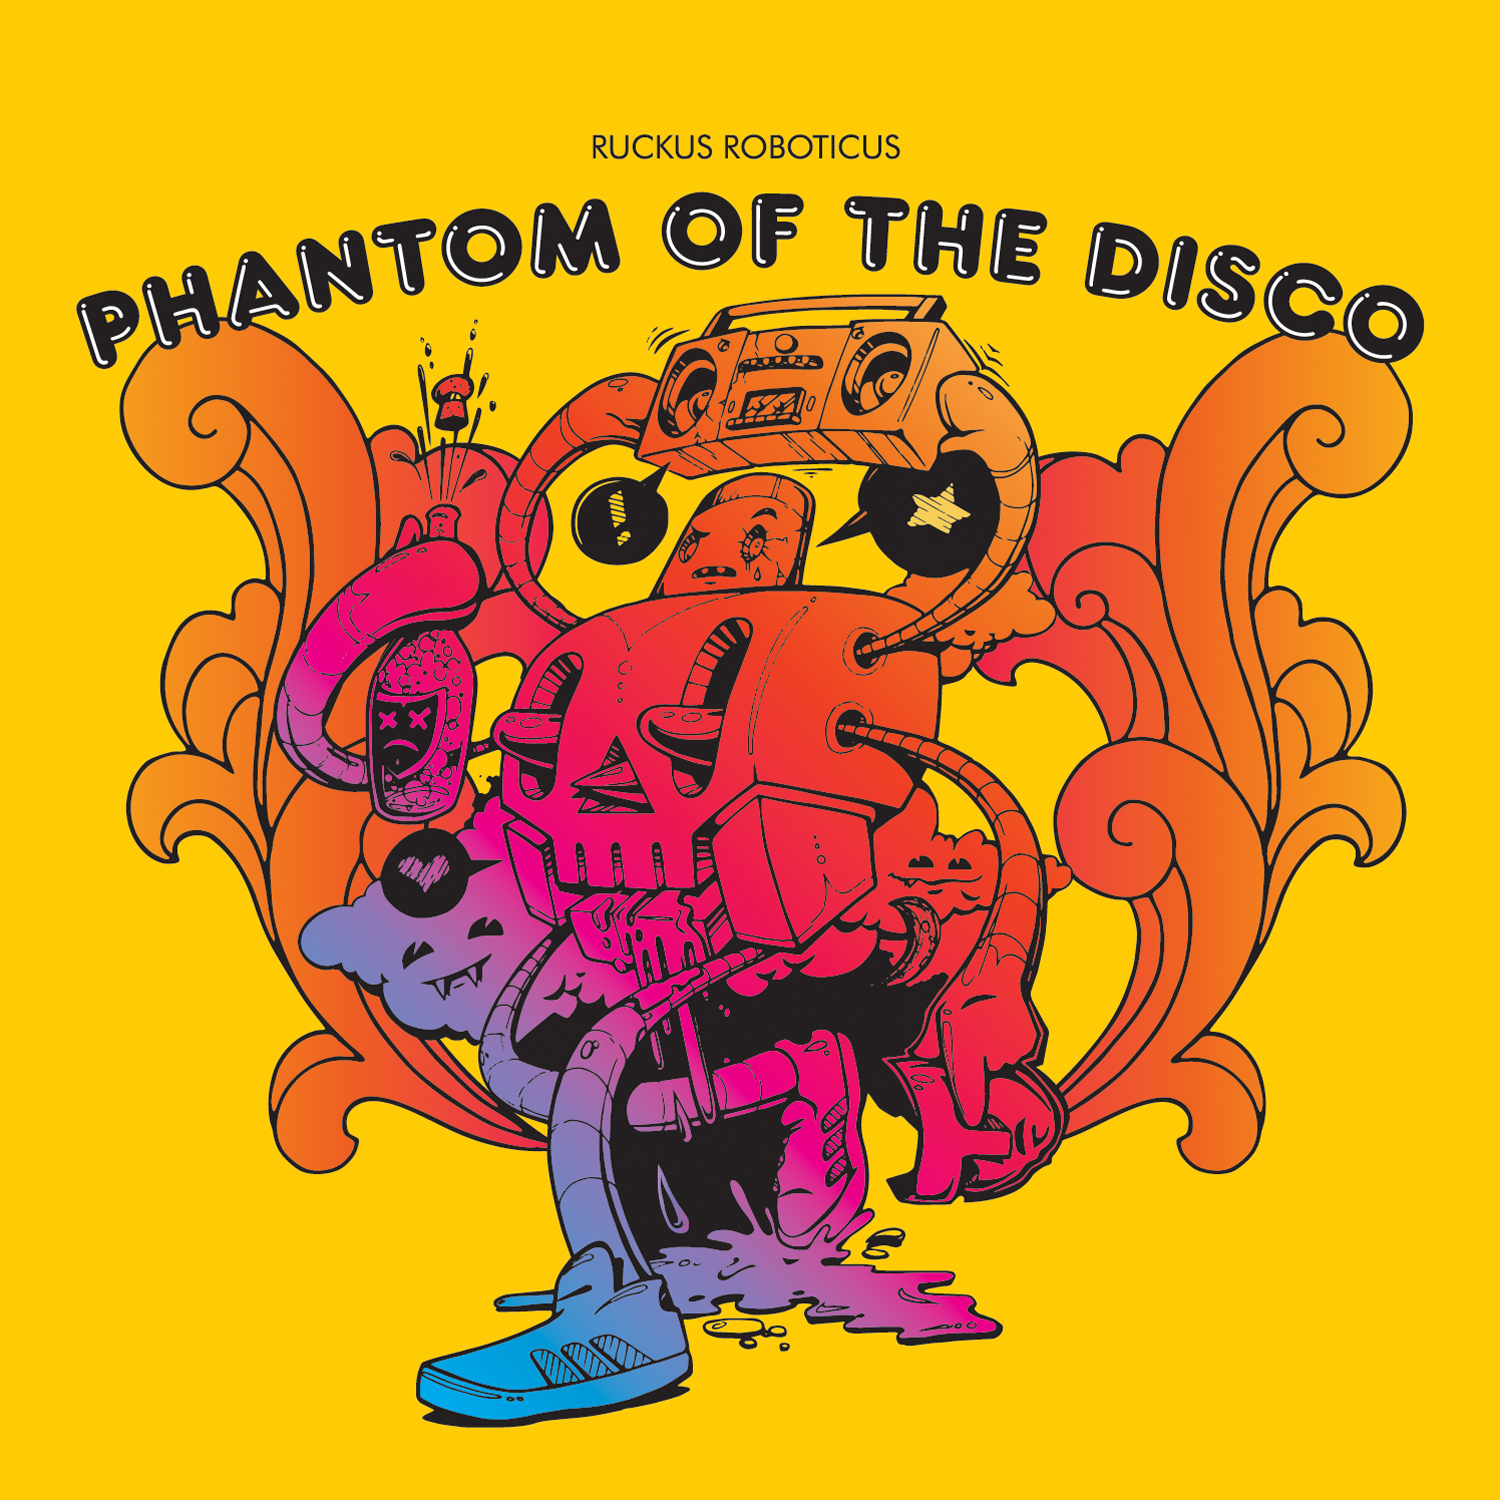 Ruckus Roboticus/PHANTOM OF THE DISCO LP